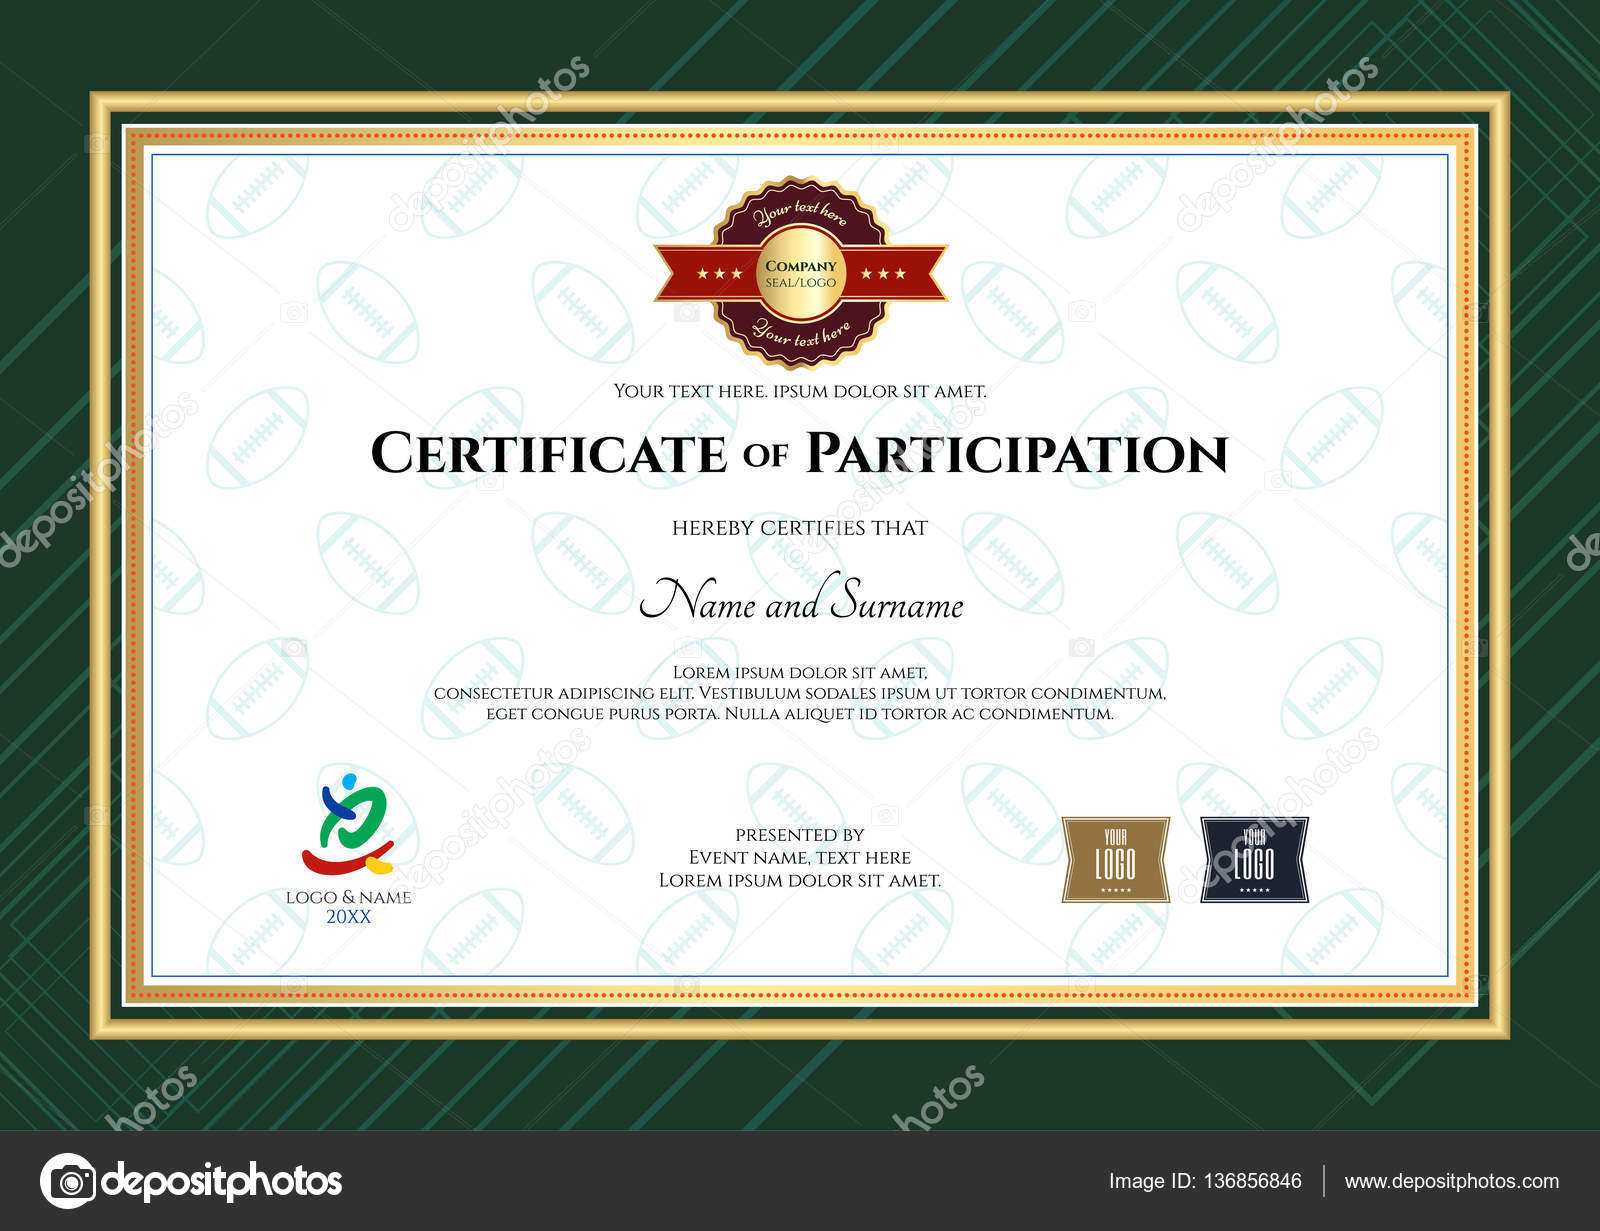 Certificate of participation template in sport theme with rugby